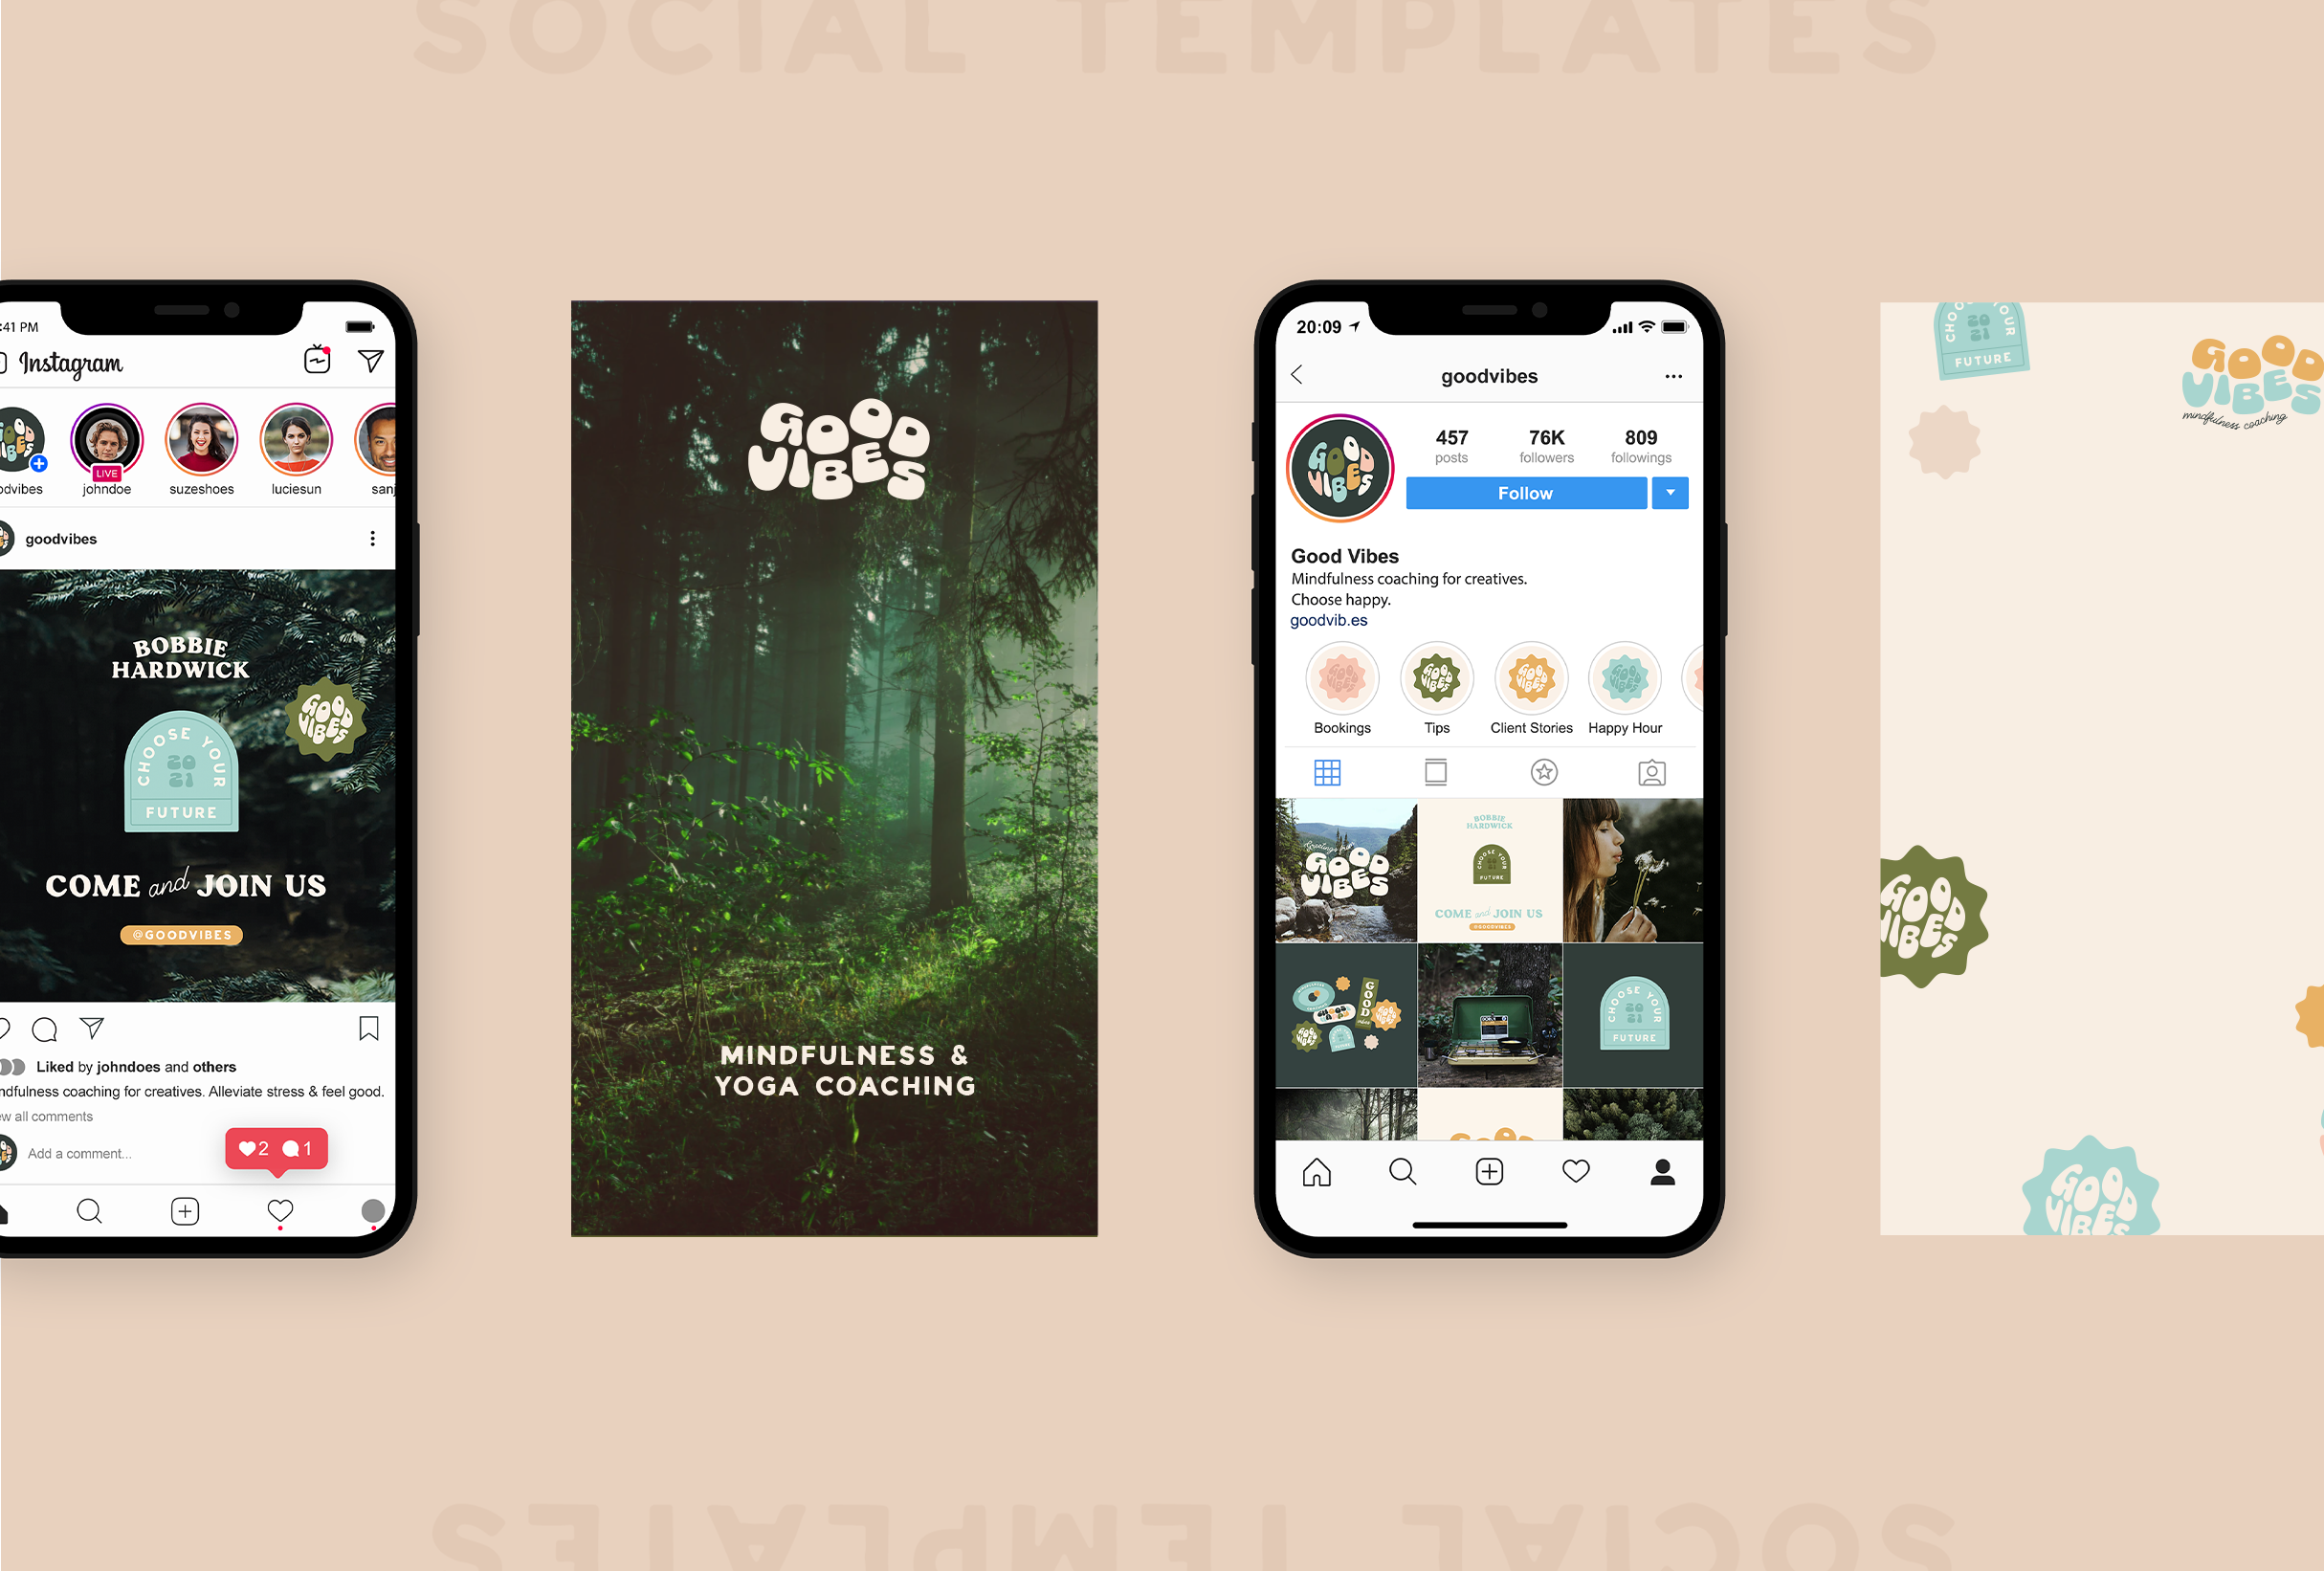 Instagram grid and story templates for Bobbie at Good Vibes, a mindfulness & coaching business for women within the creative & tech industries - designed by Wiltshire-based graphic designer, Kaye Huett